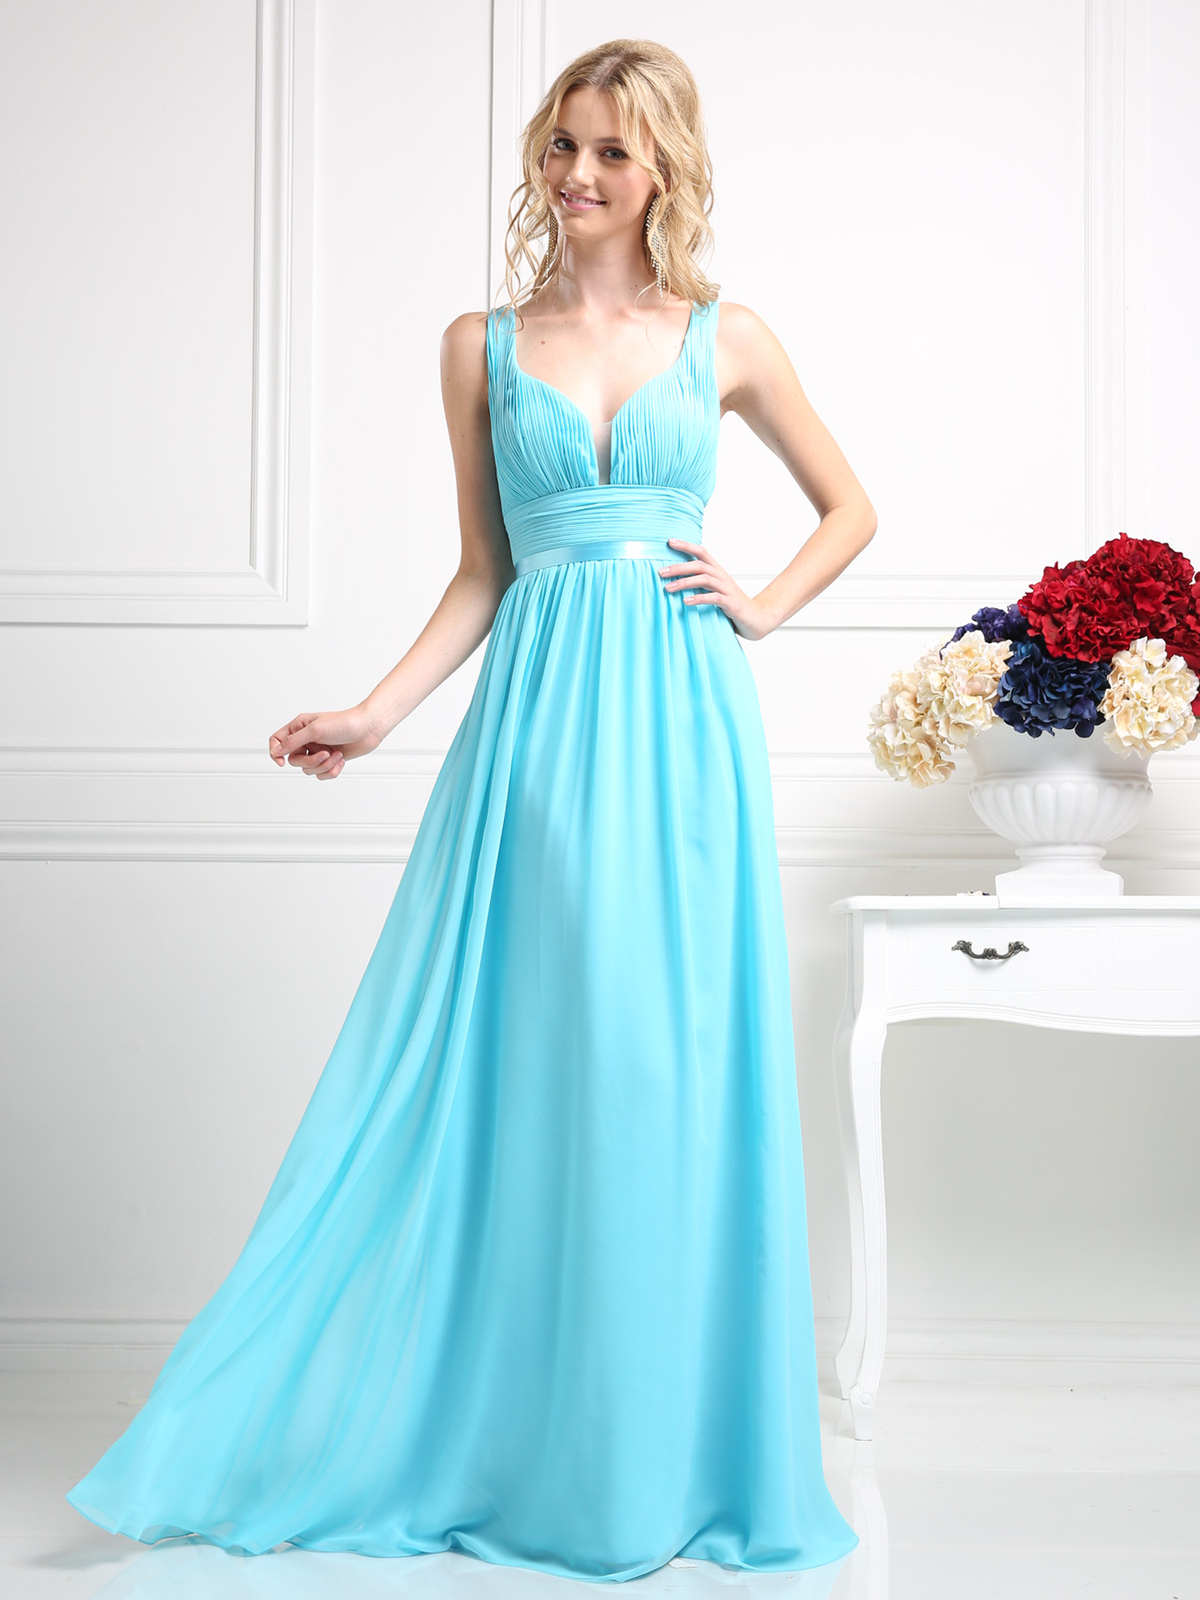 Sleeveless Bridesmaid Dress With Empire Waist Sung